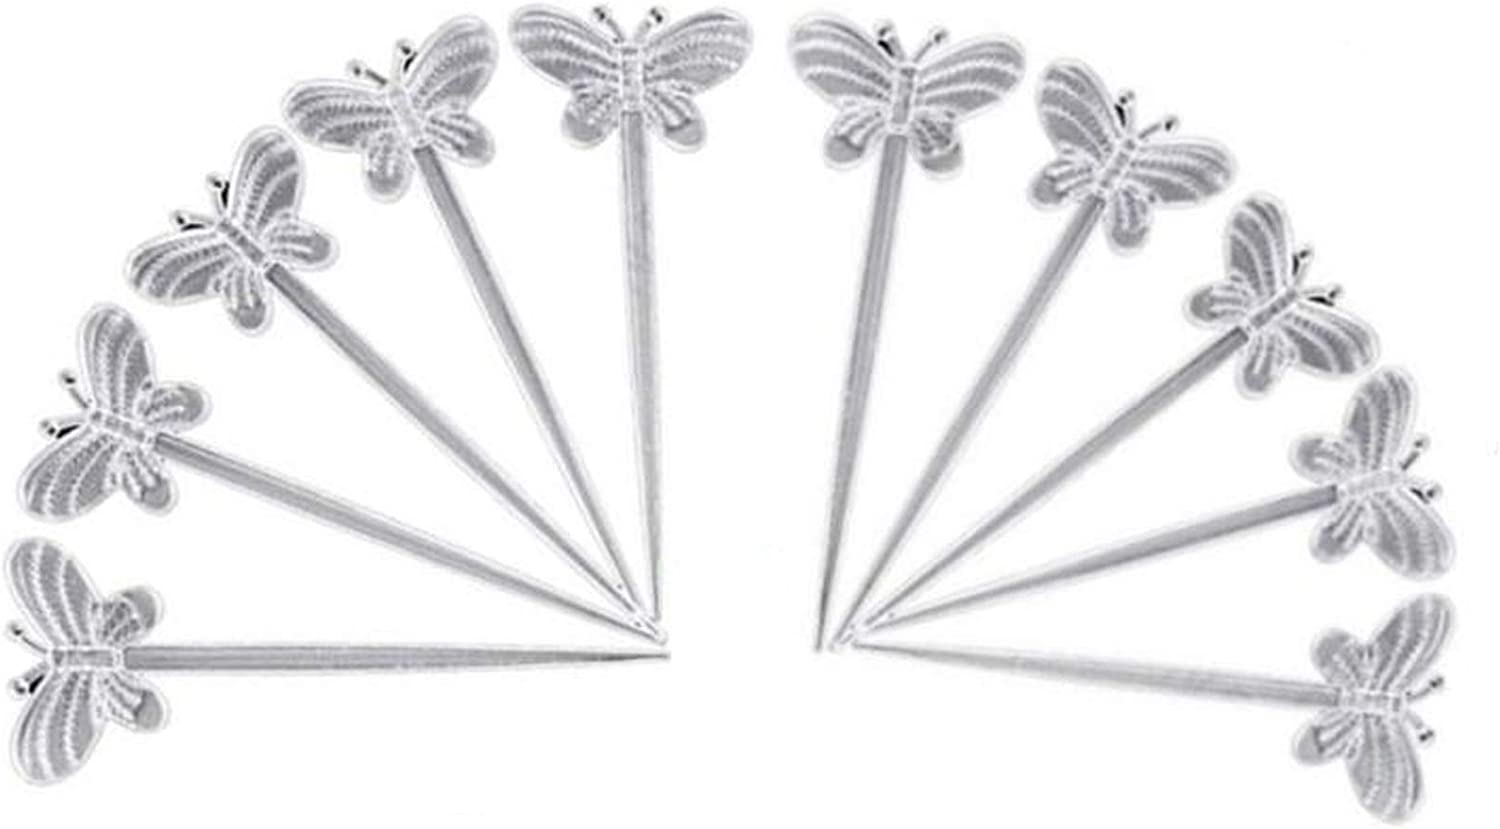 200 Pack of Transparent Butterfly Shape Fruit Toothpick Plastic Cocktail Picks 3.5